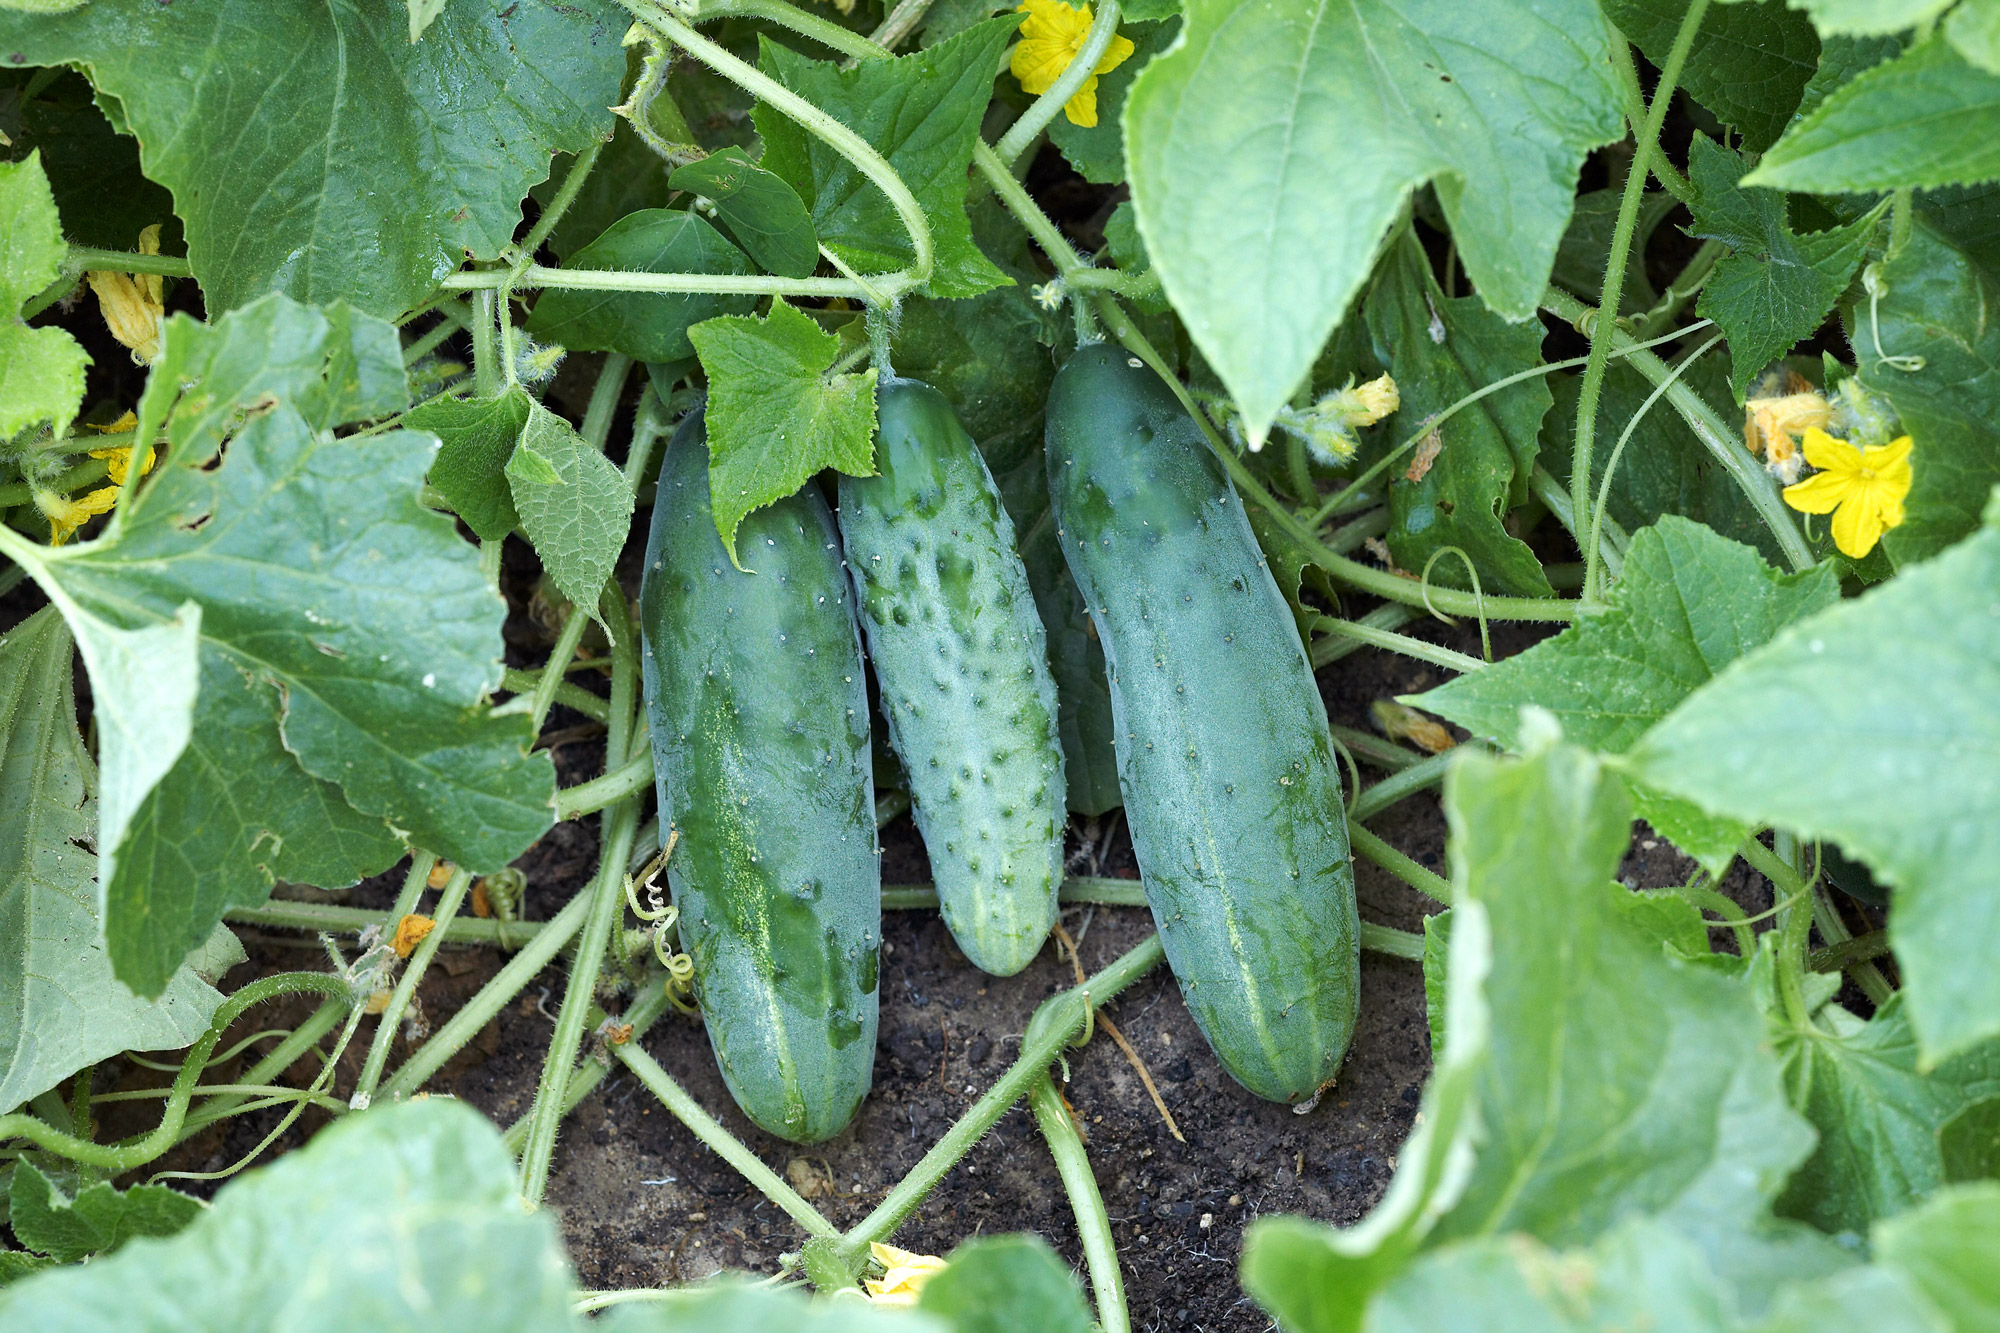 'Marketer' cucumber